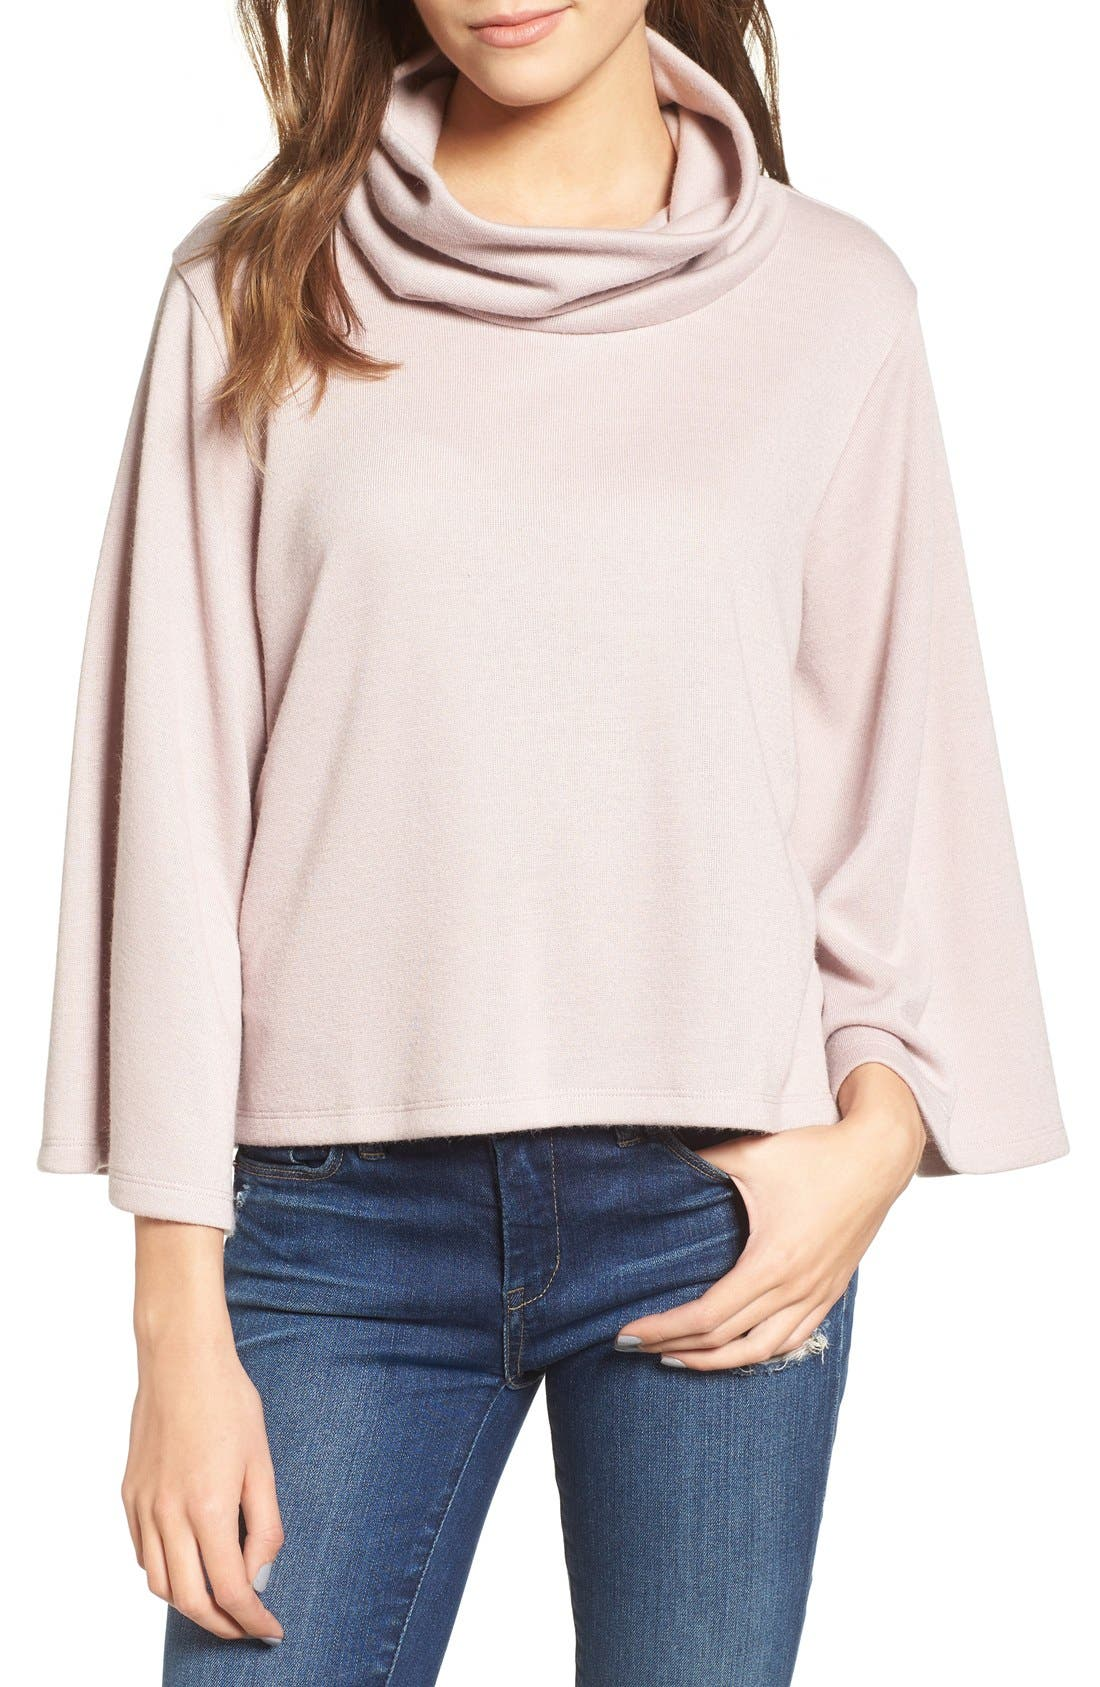 Alternate Image 1 Selected - Leith Cowl Neck Top